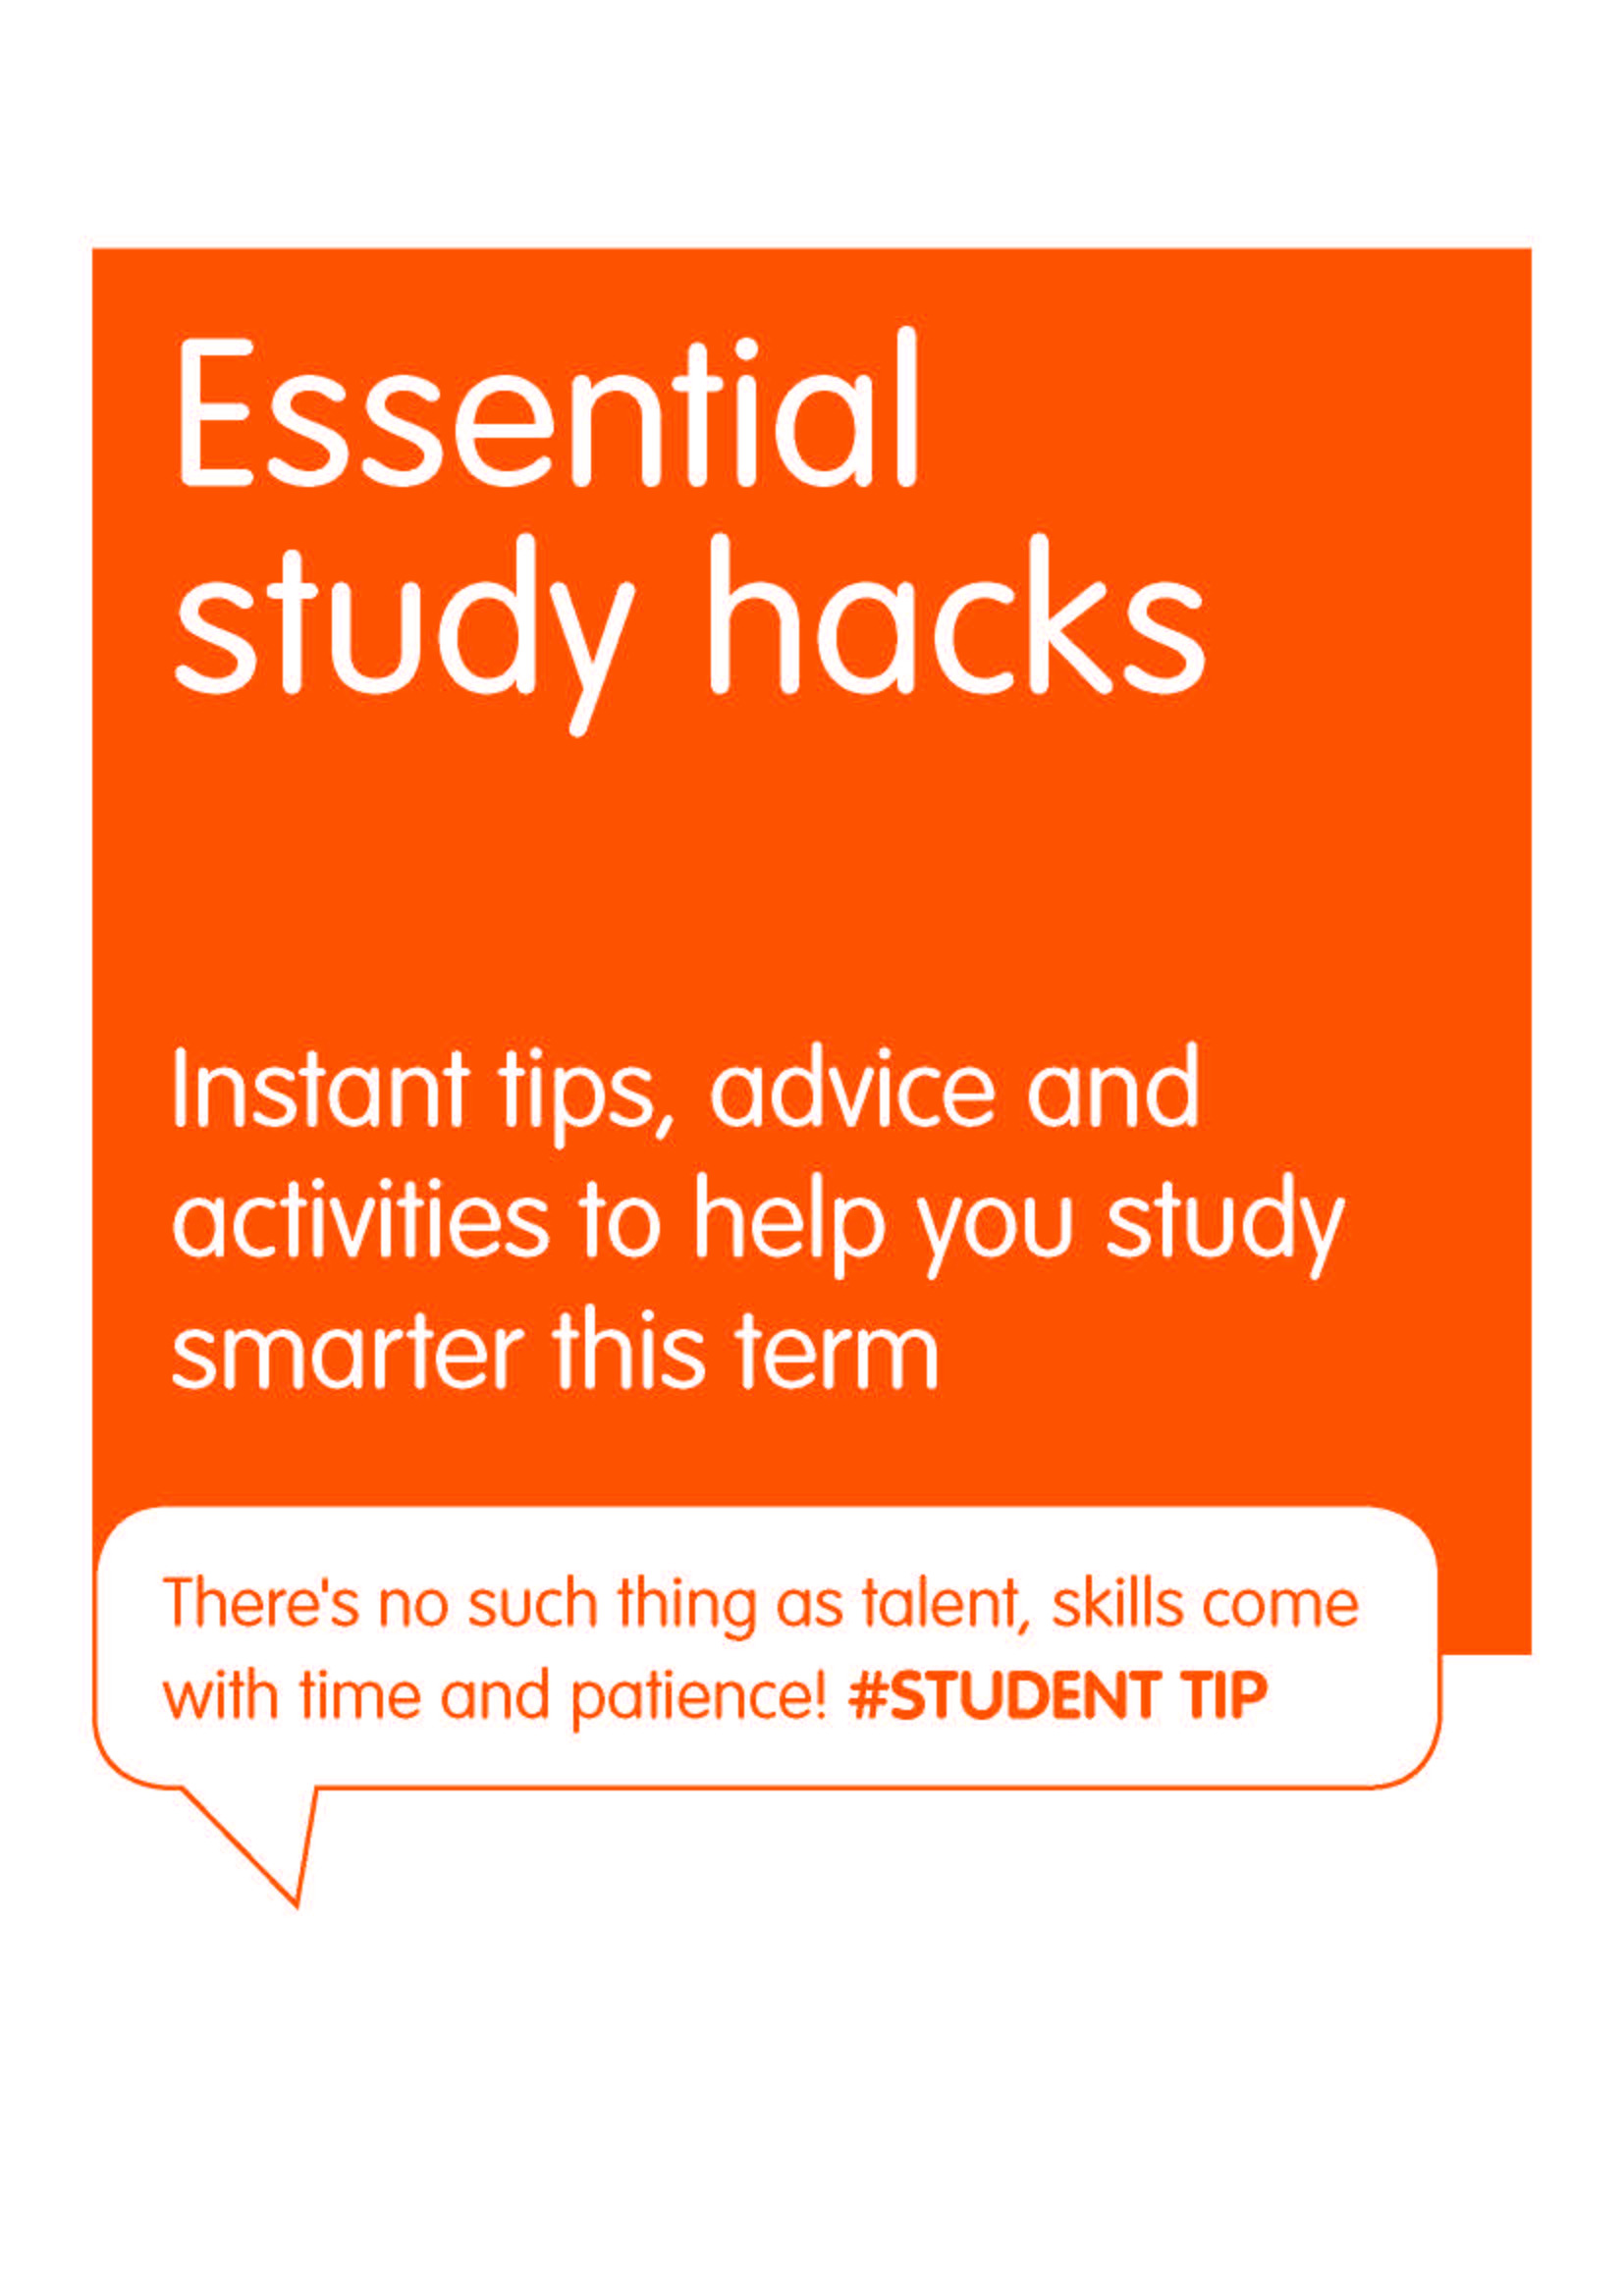 Download the free study hacks eBooks